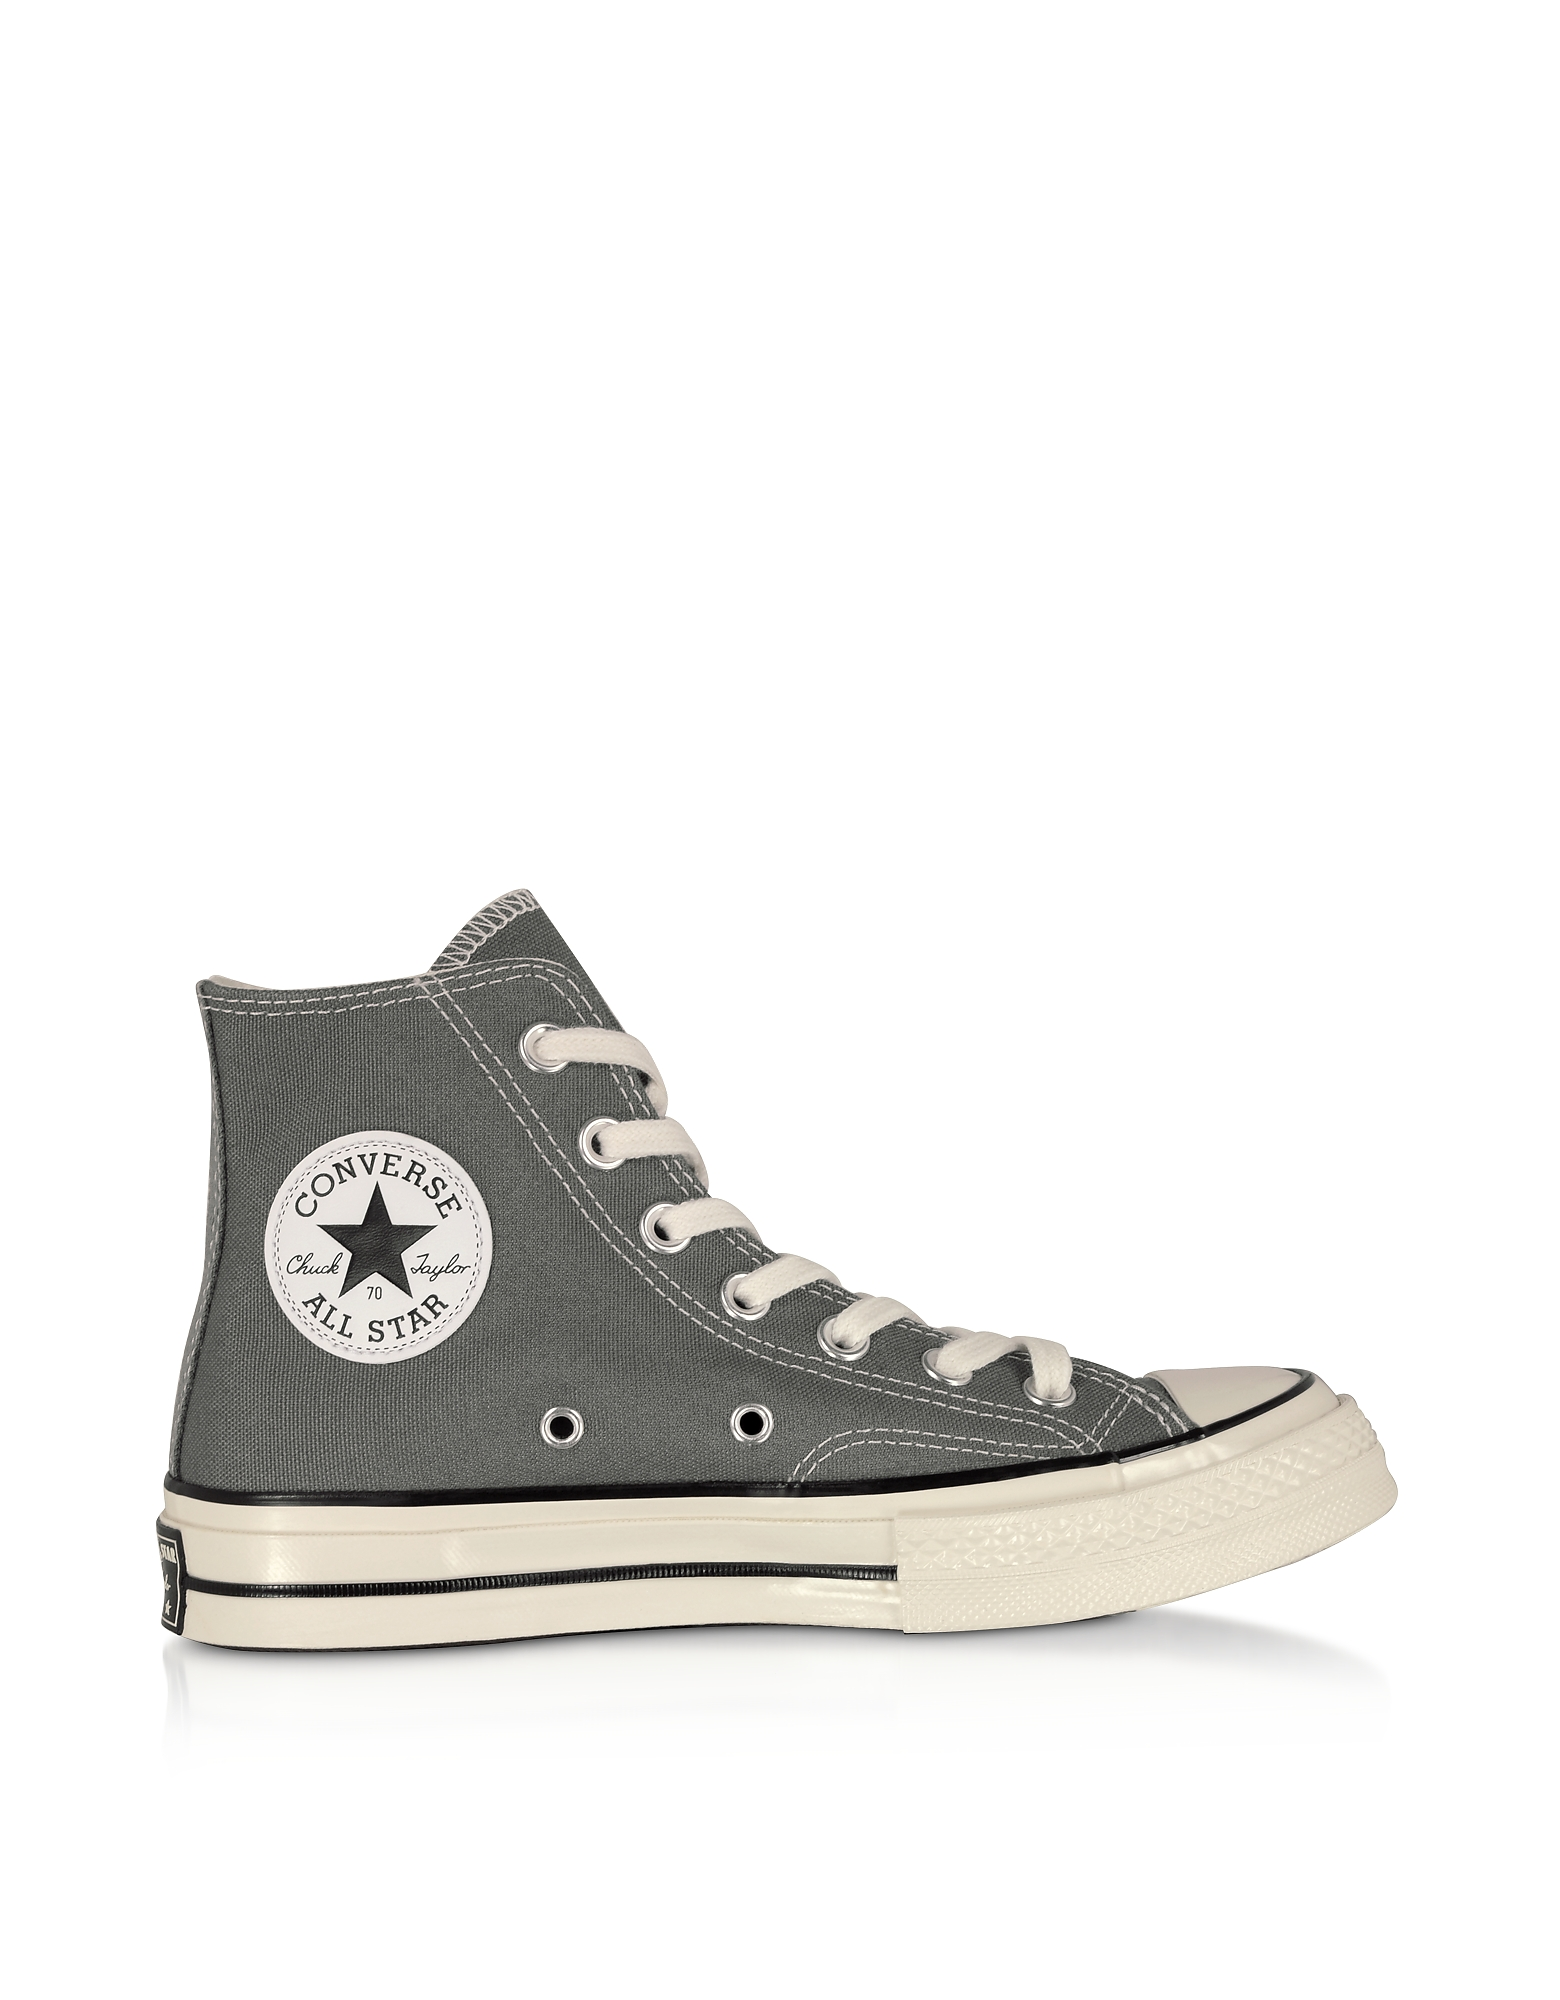 Converse Limited Edition Designer Shoes, Mason Chuck 70 w/ Vintage Canvas High Top